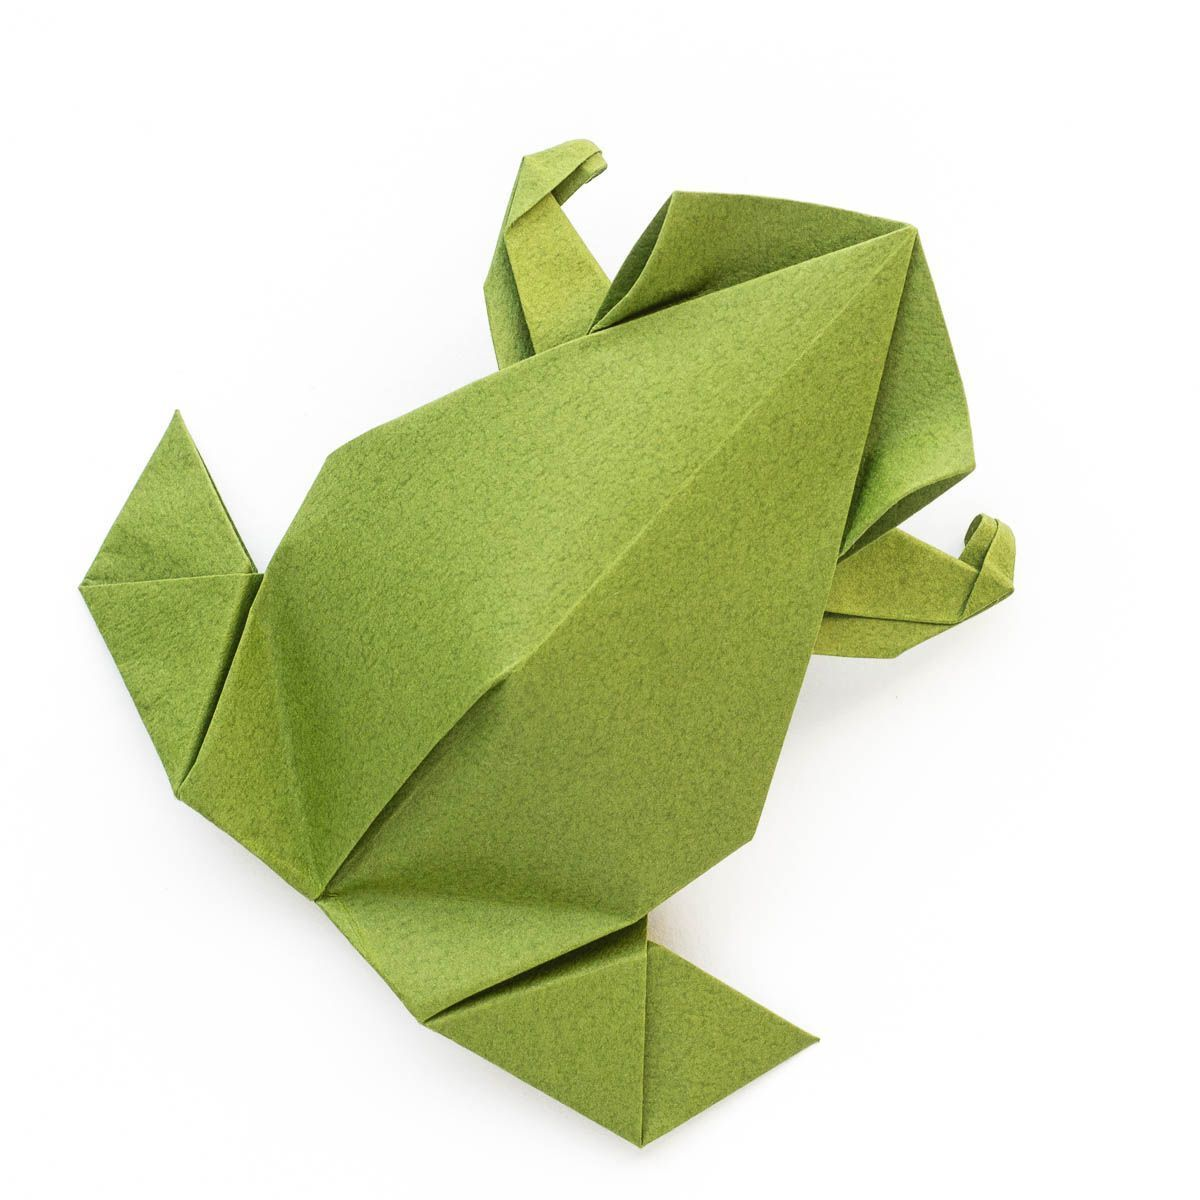 Photo of Pre-Columbian Style Origami Frog by Leyla Torres | Go Origami,  #frog #Leyla #Origami ,,  #fr…